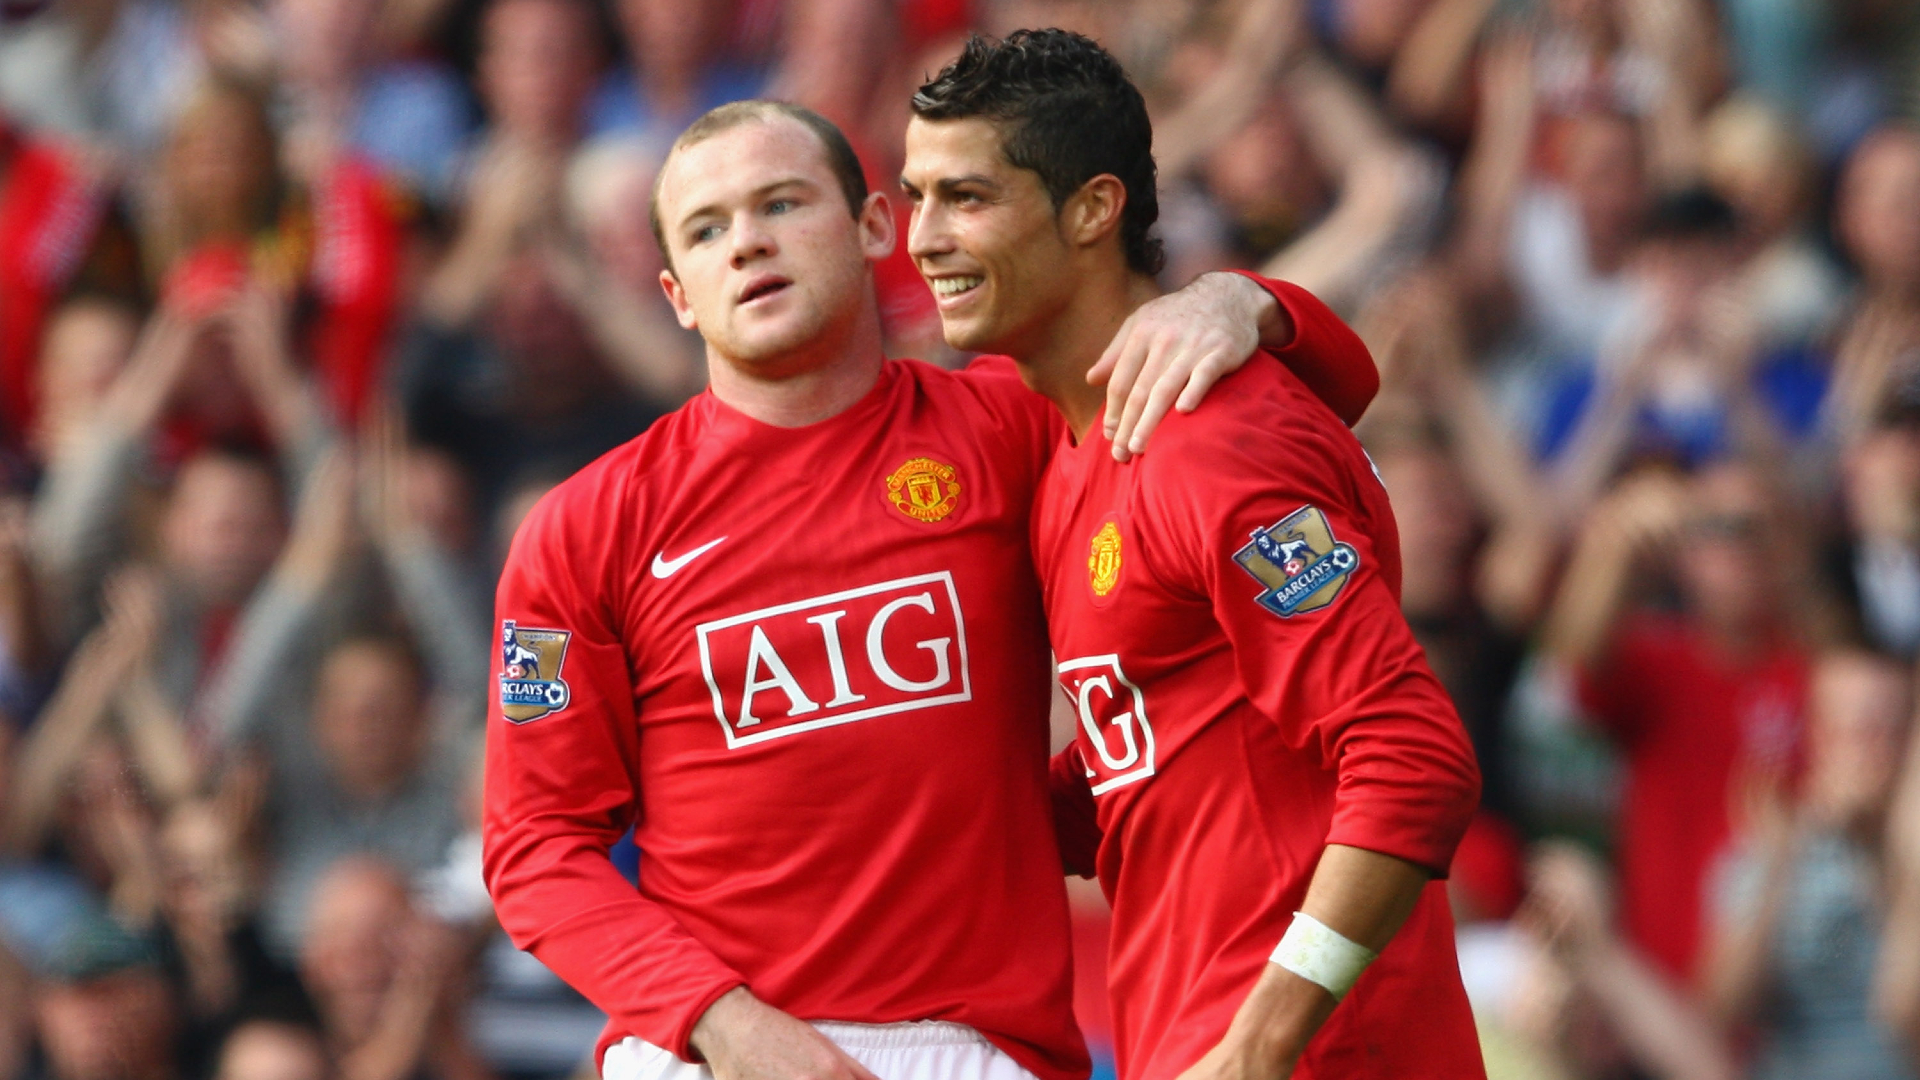 Rooney reveals taking Ronaldo to McDonalds before Man Utd match